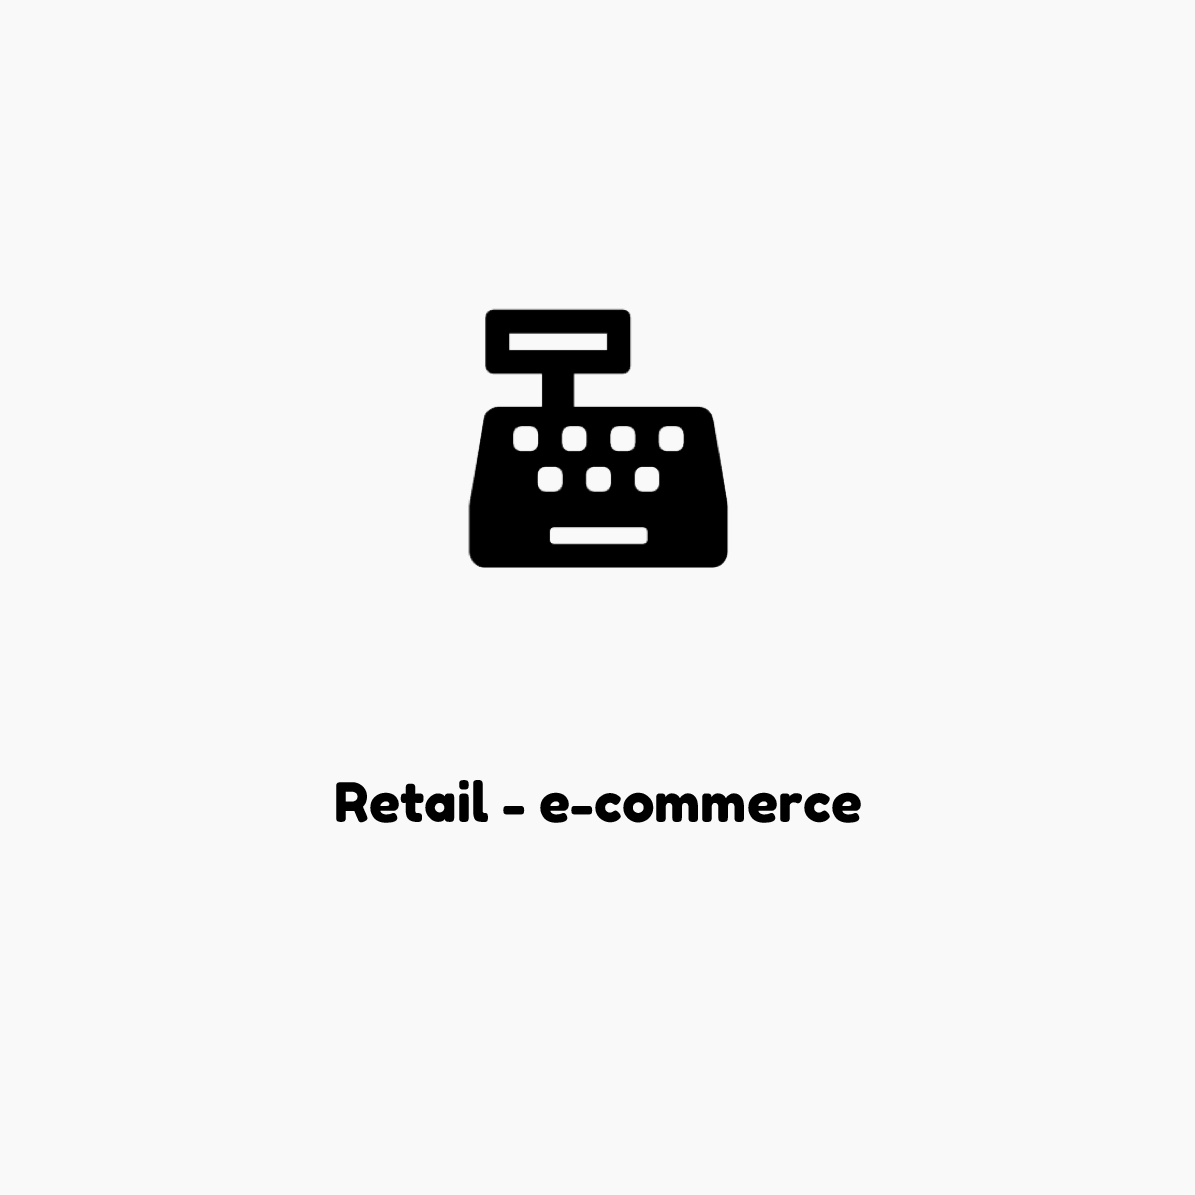 Retail e-commerce